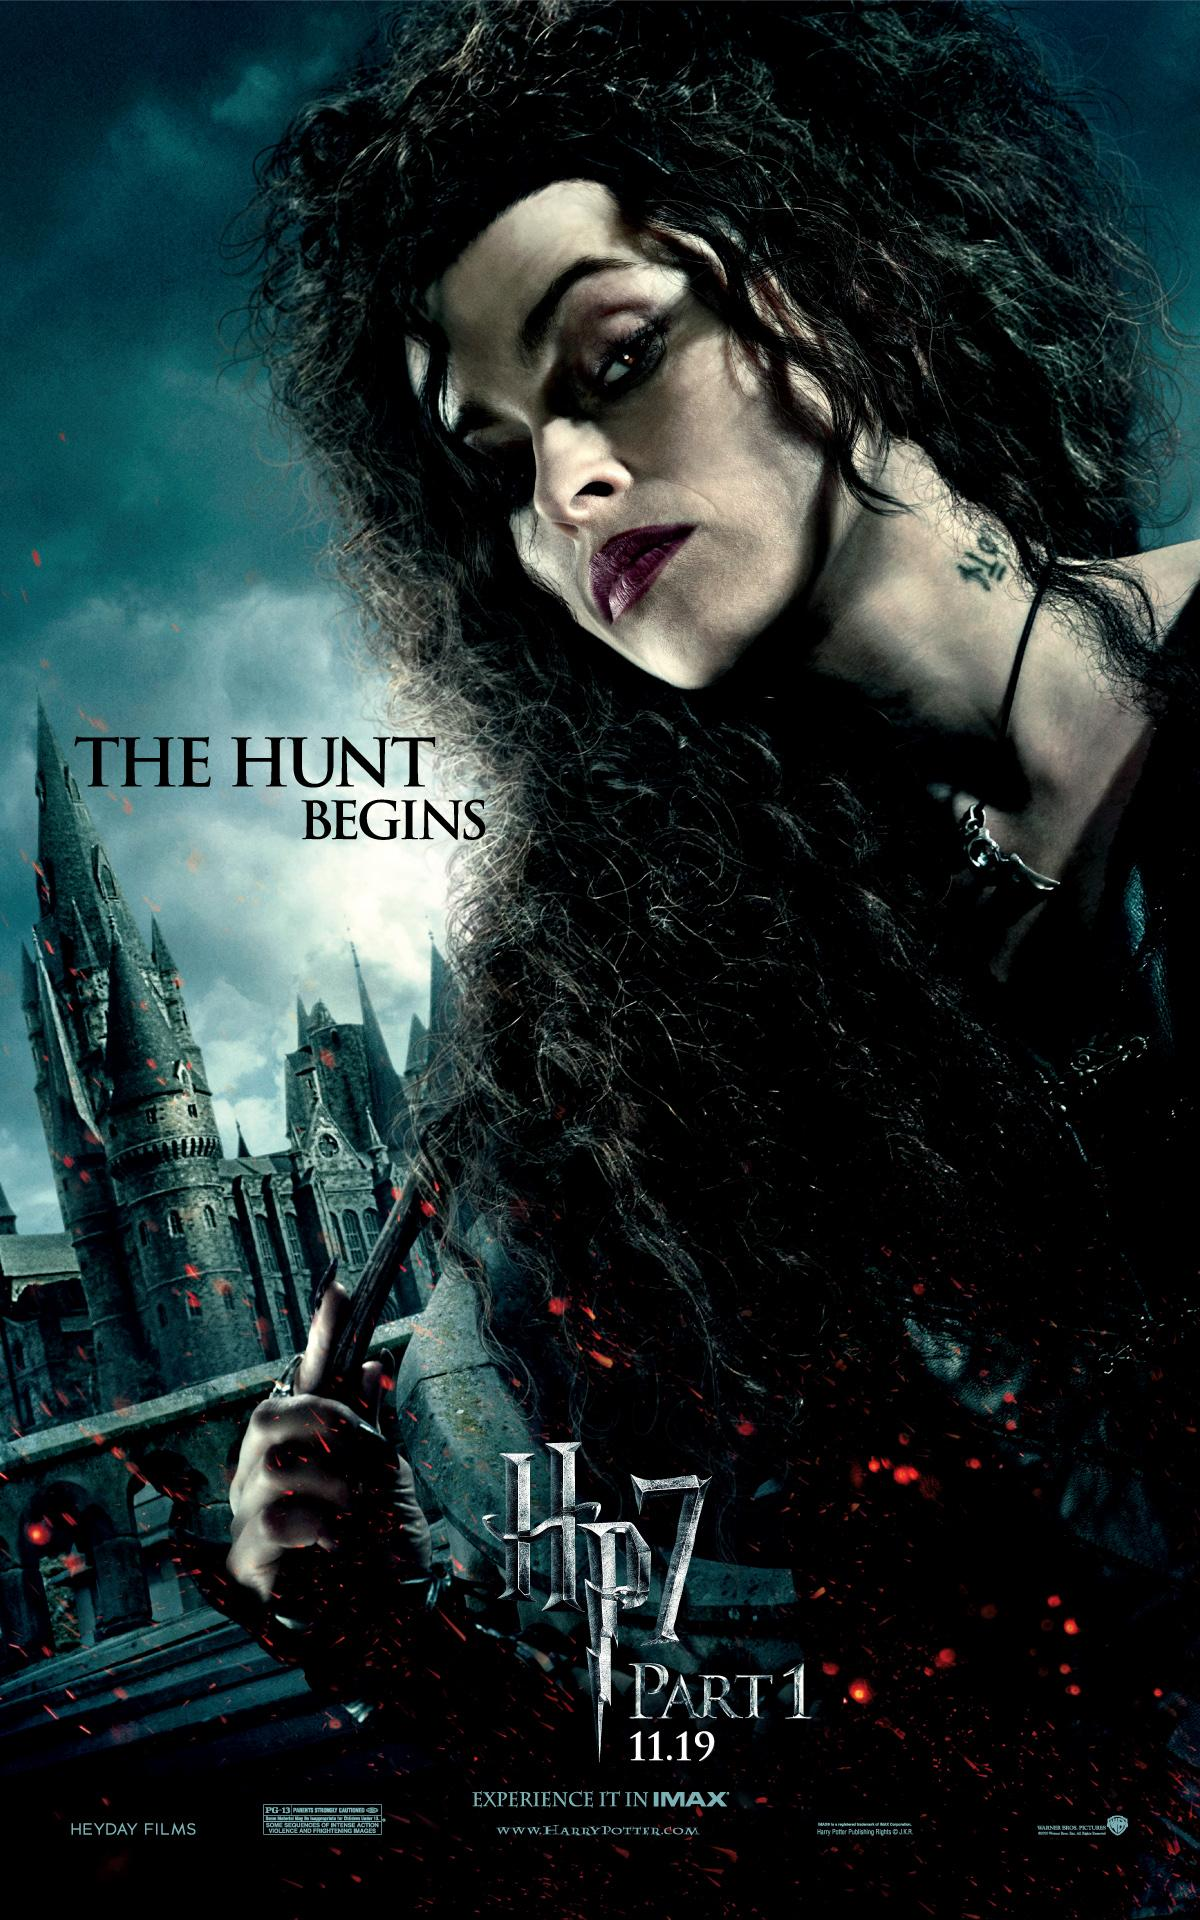 'Deathly Hallows: Part 1' Bellatrix poster